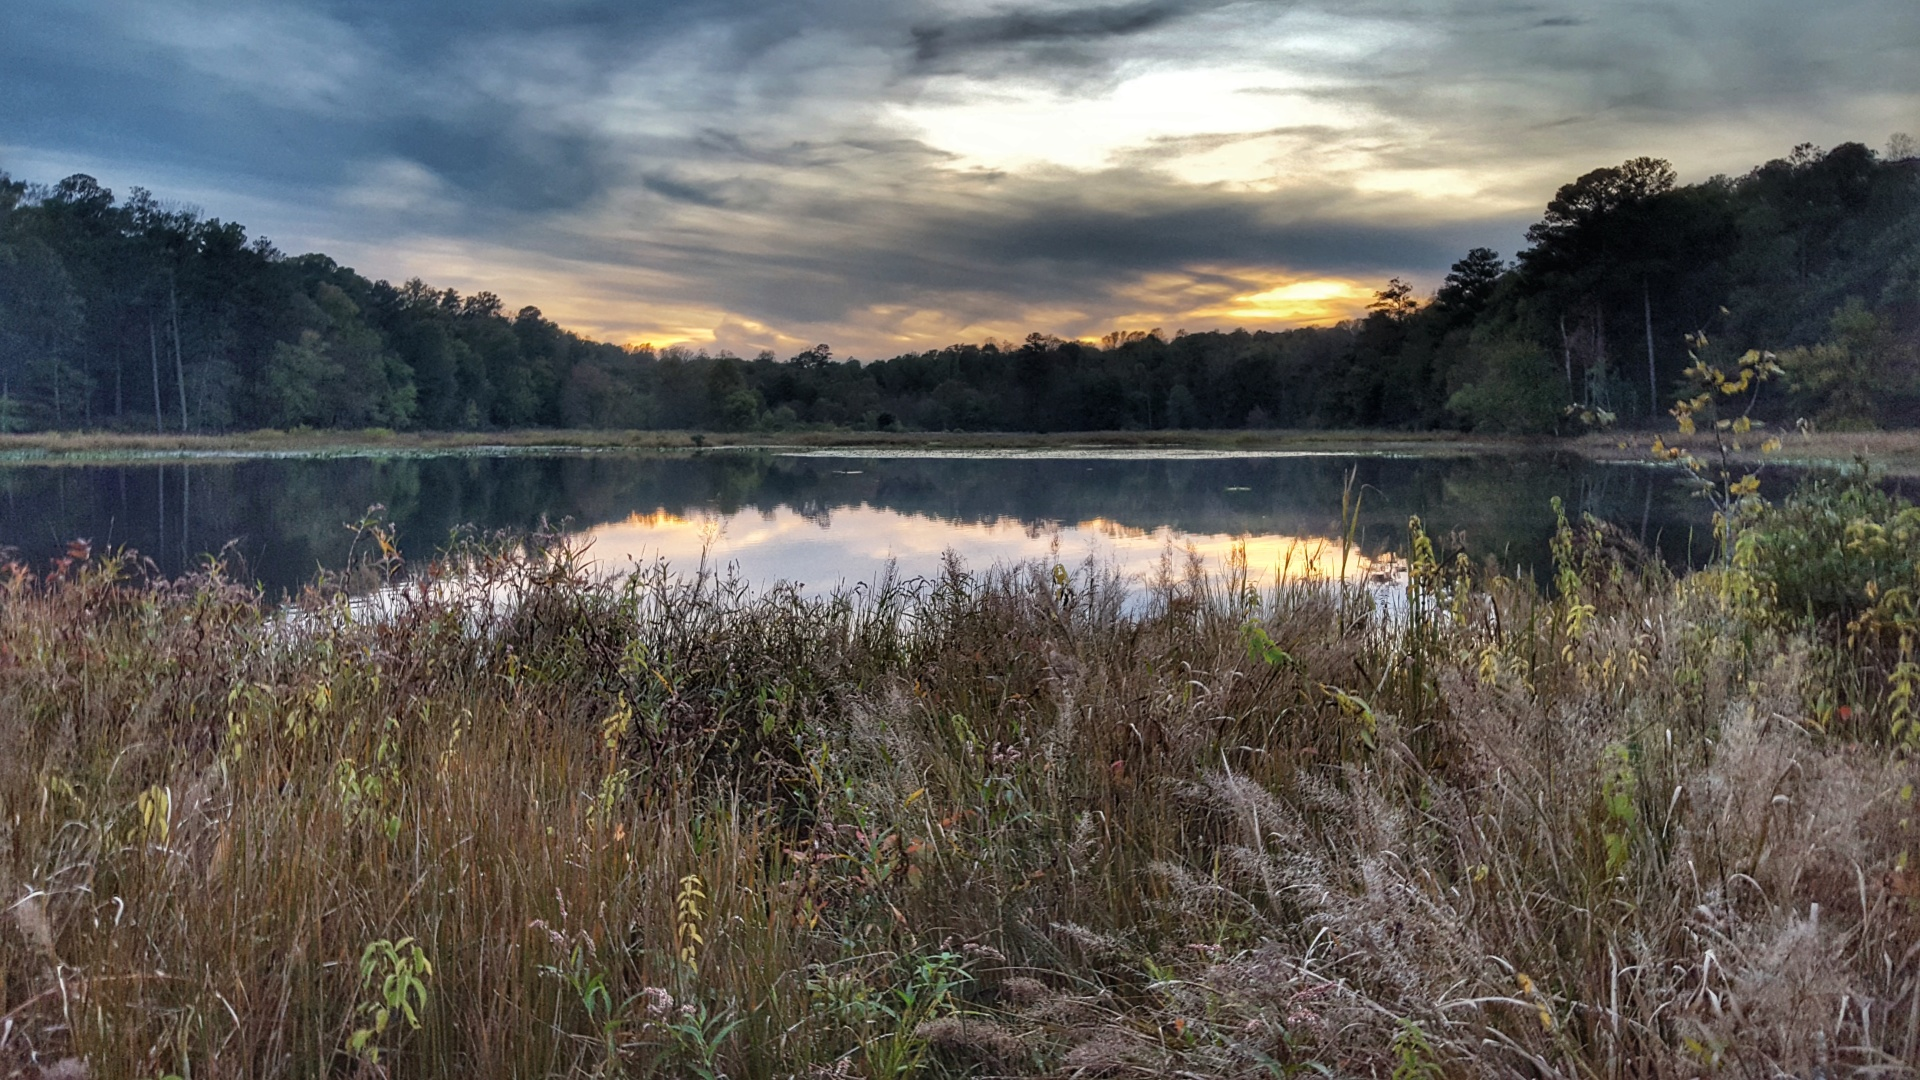 Sunset on Beaver Lake by Kevin Divins